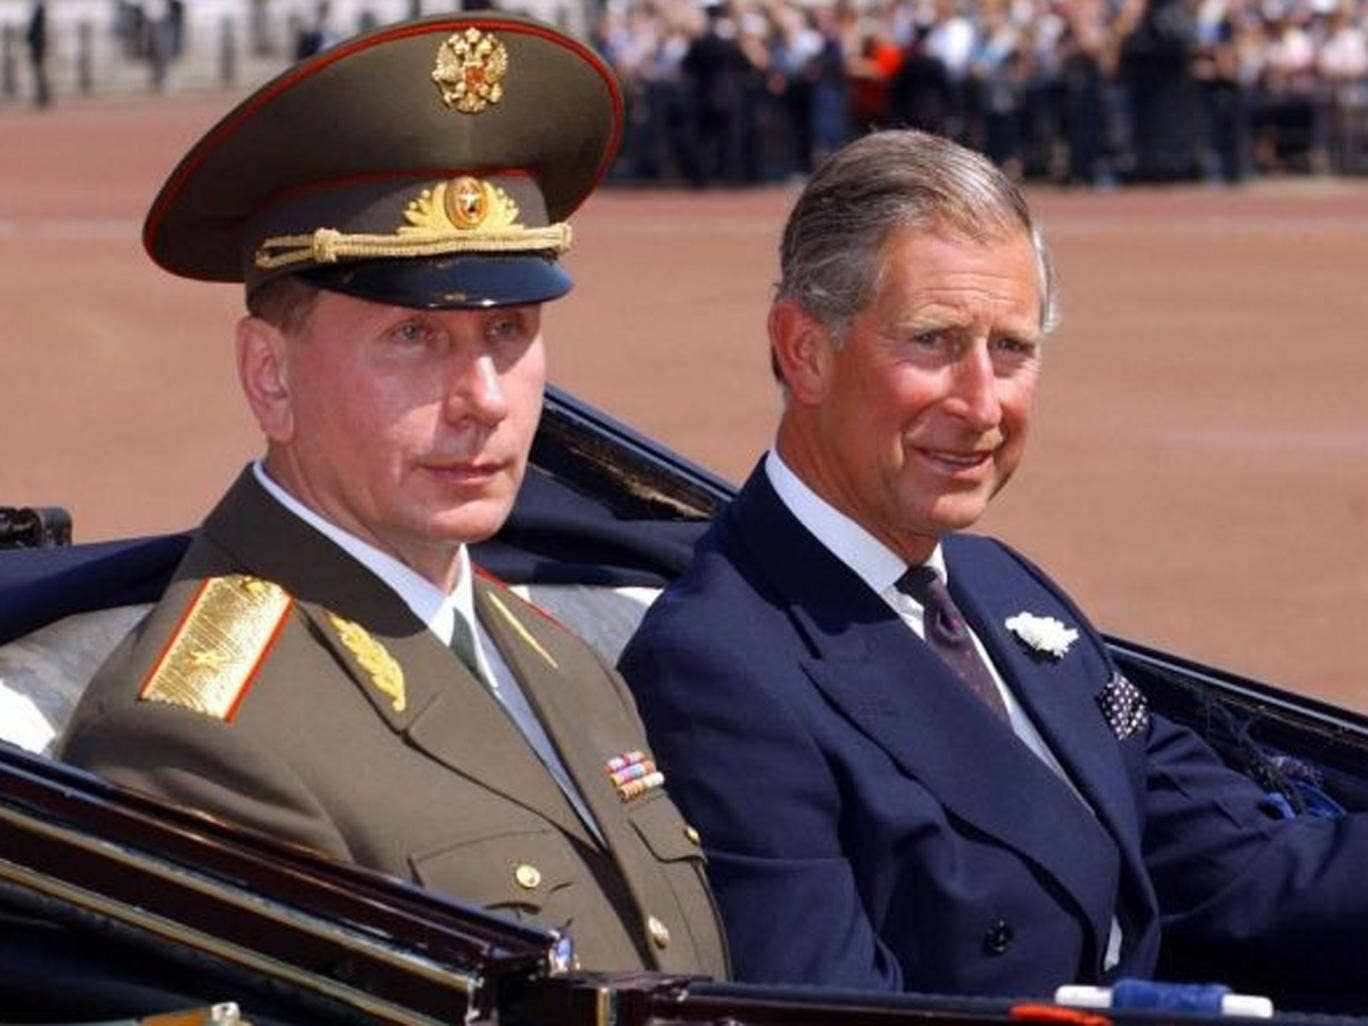 File photo dated 24/06/03 of the Prince of Wales (right) at Buckingham Palace in London with Russian President Vladimir Putin. The Prince of Wales has compared the actions of Russian leader Vladimir Putin to Nazi dictator Adolf Hitler, it has been claimed